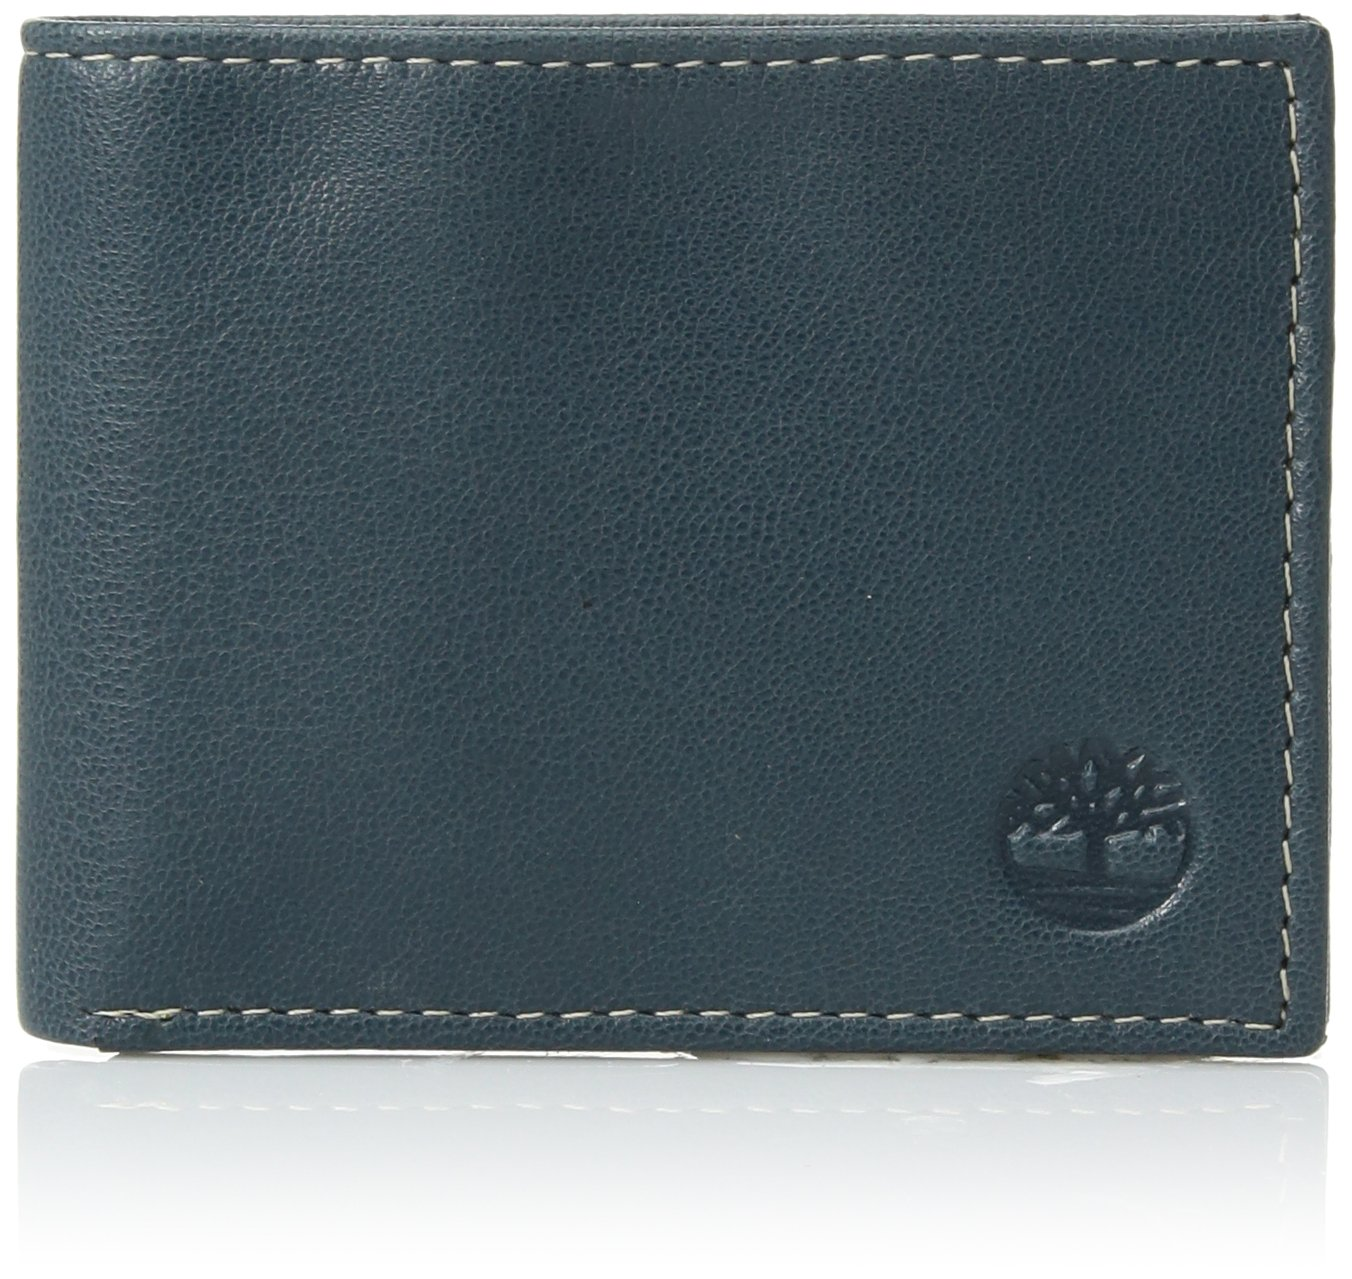 Timberland Mens Slimfold Leather Wallet